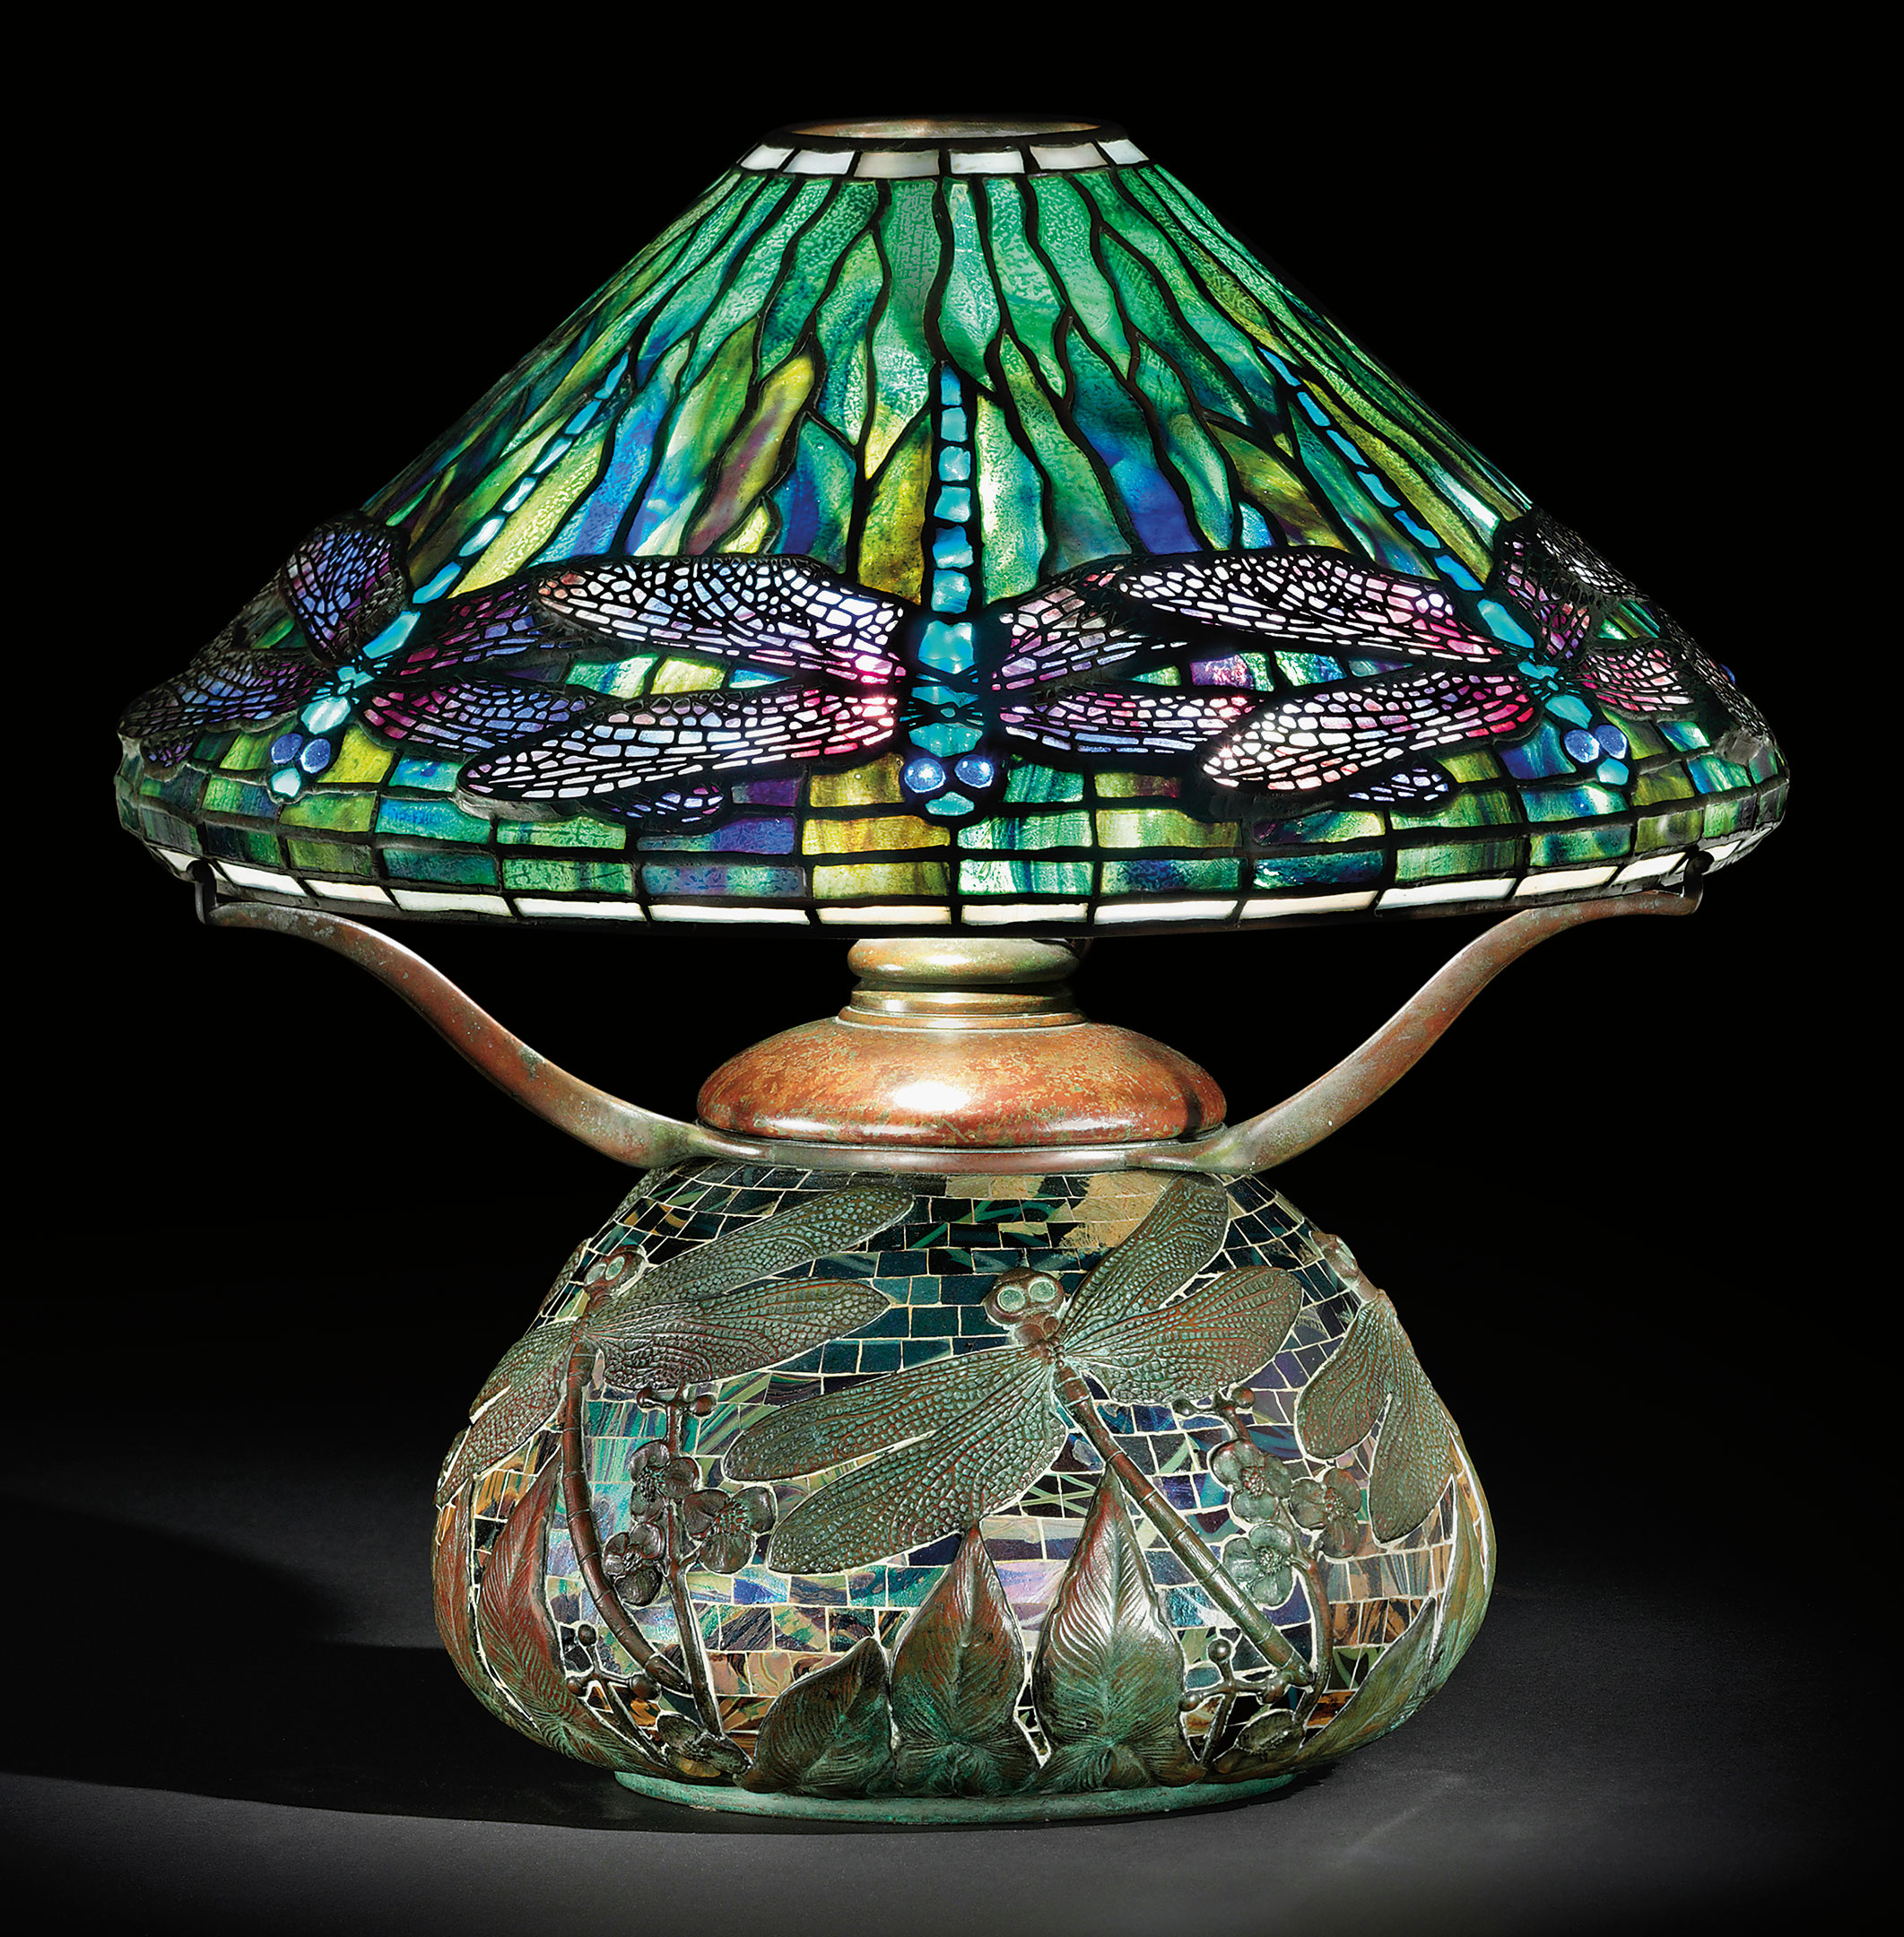 Hanging tiffany lamp needs bottom cover